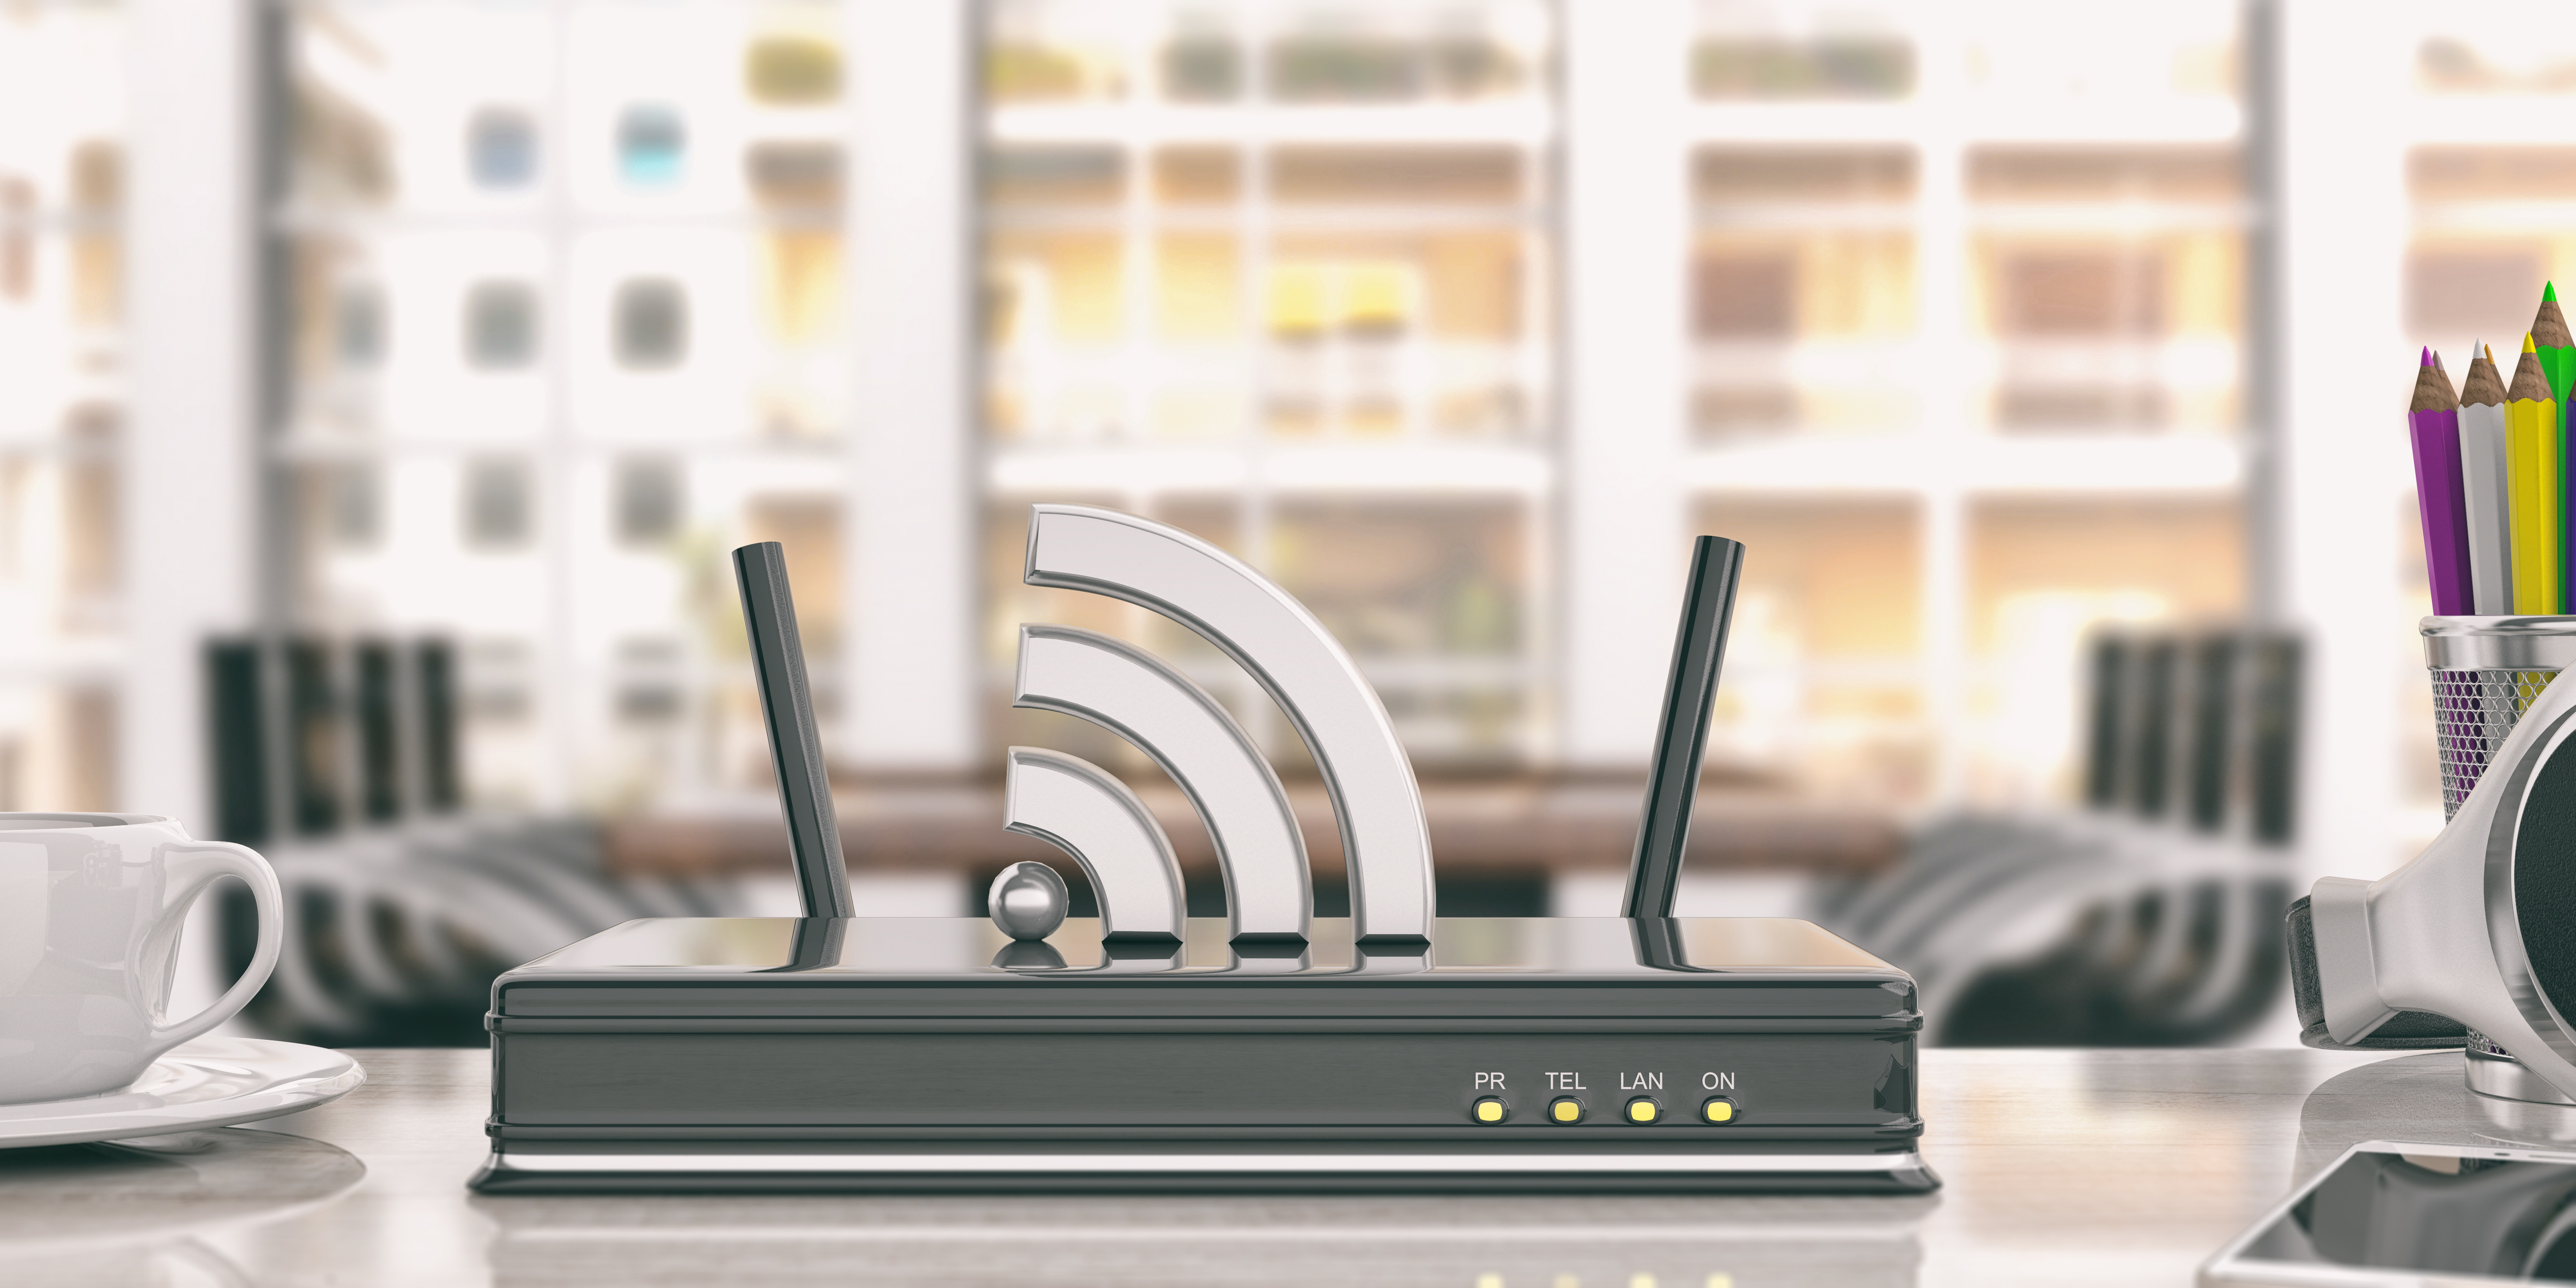 wifi-router-in-an-office-background-3d-PTS26M6